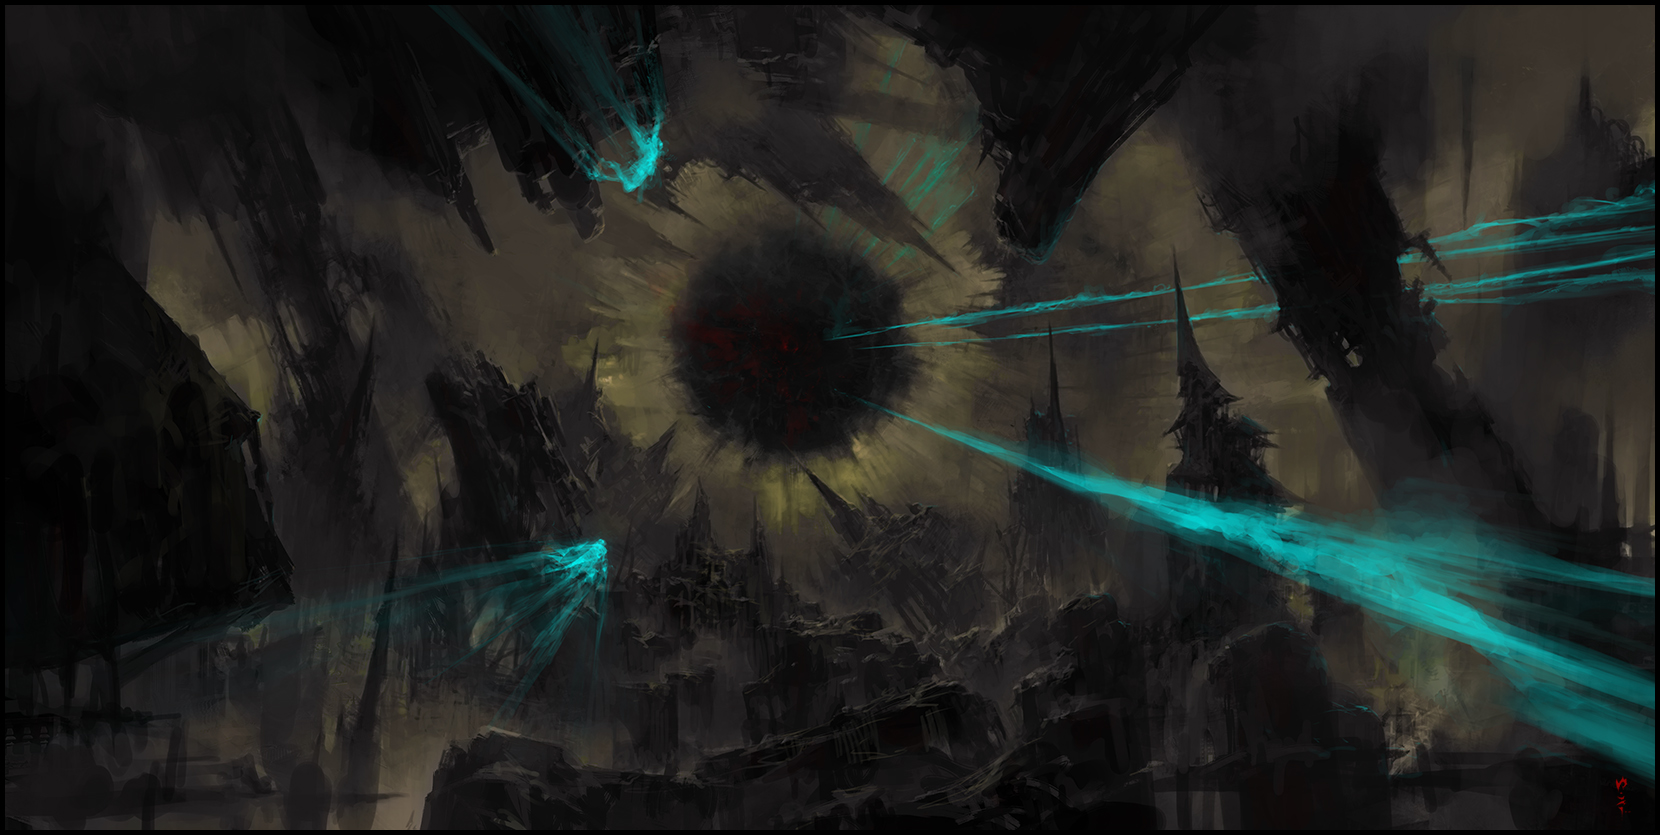 Castle World - The Black Core by ChrisCold